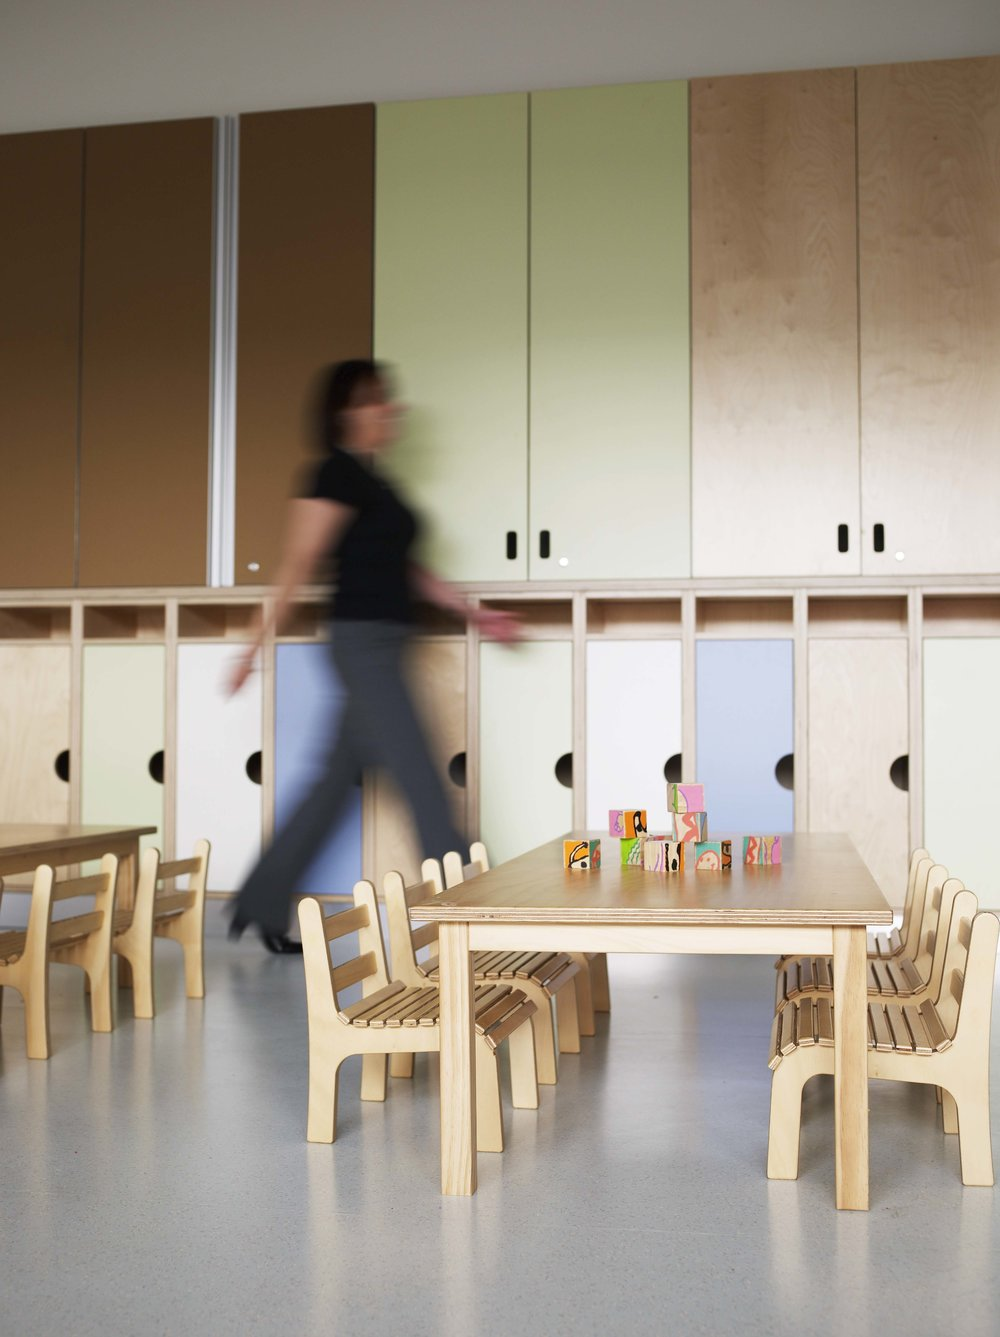 Montessori Schools Furniture by Koskela 011.jpg